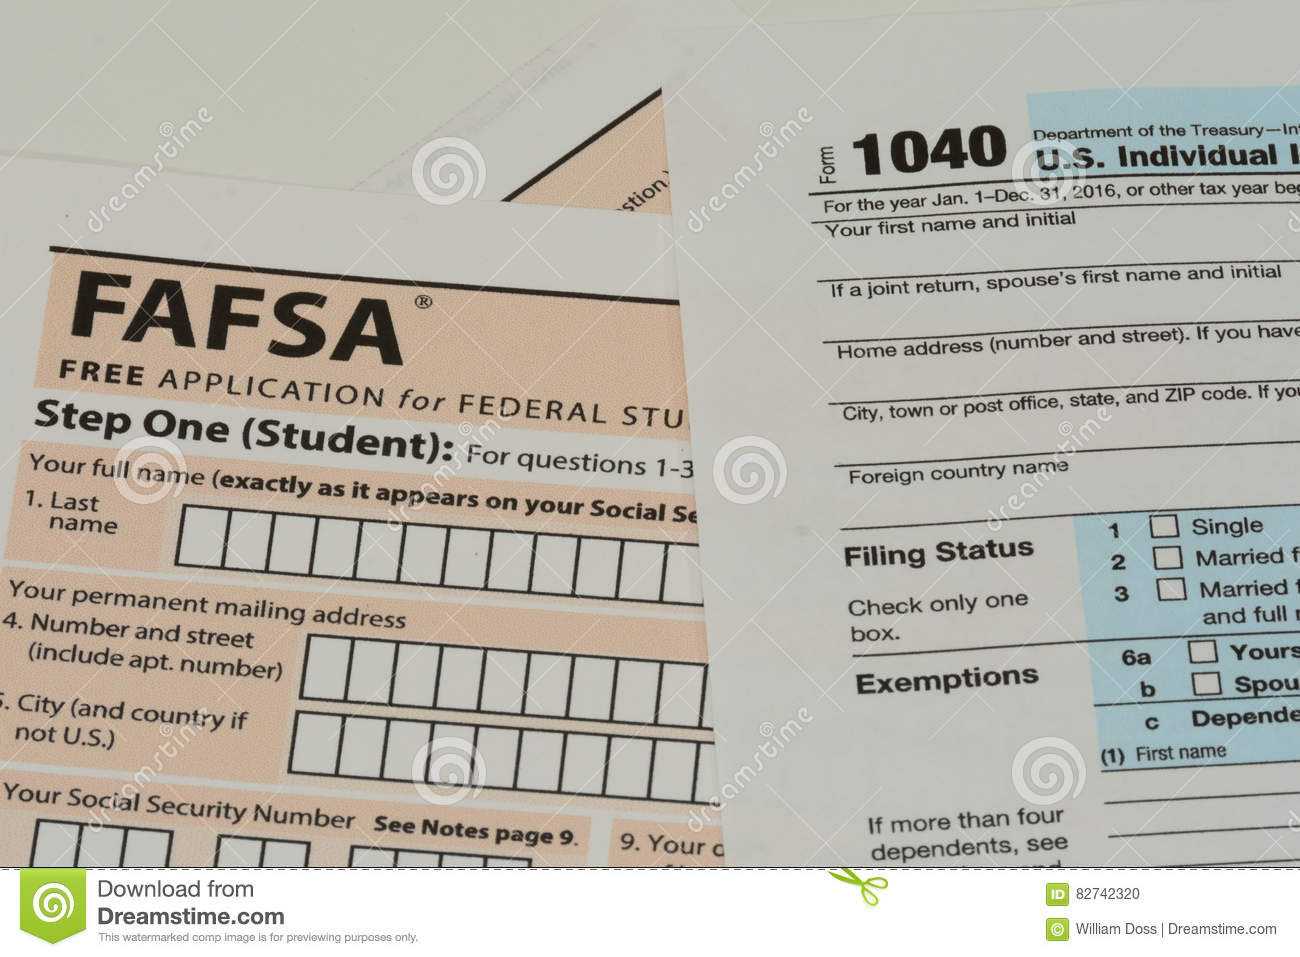 IRS and FAFSA tax forms